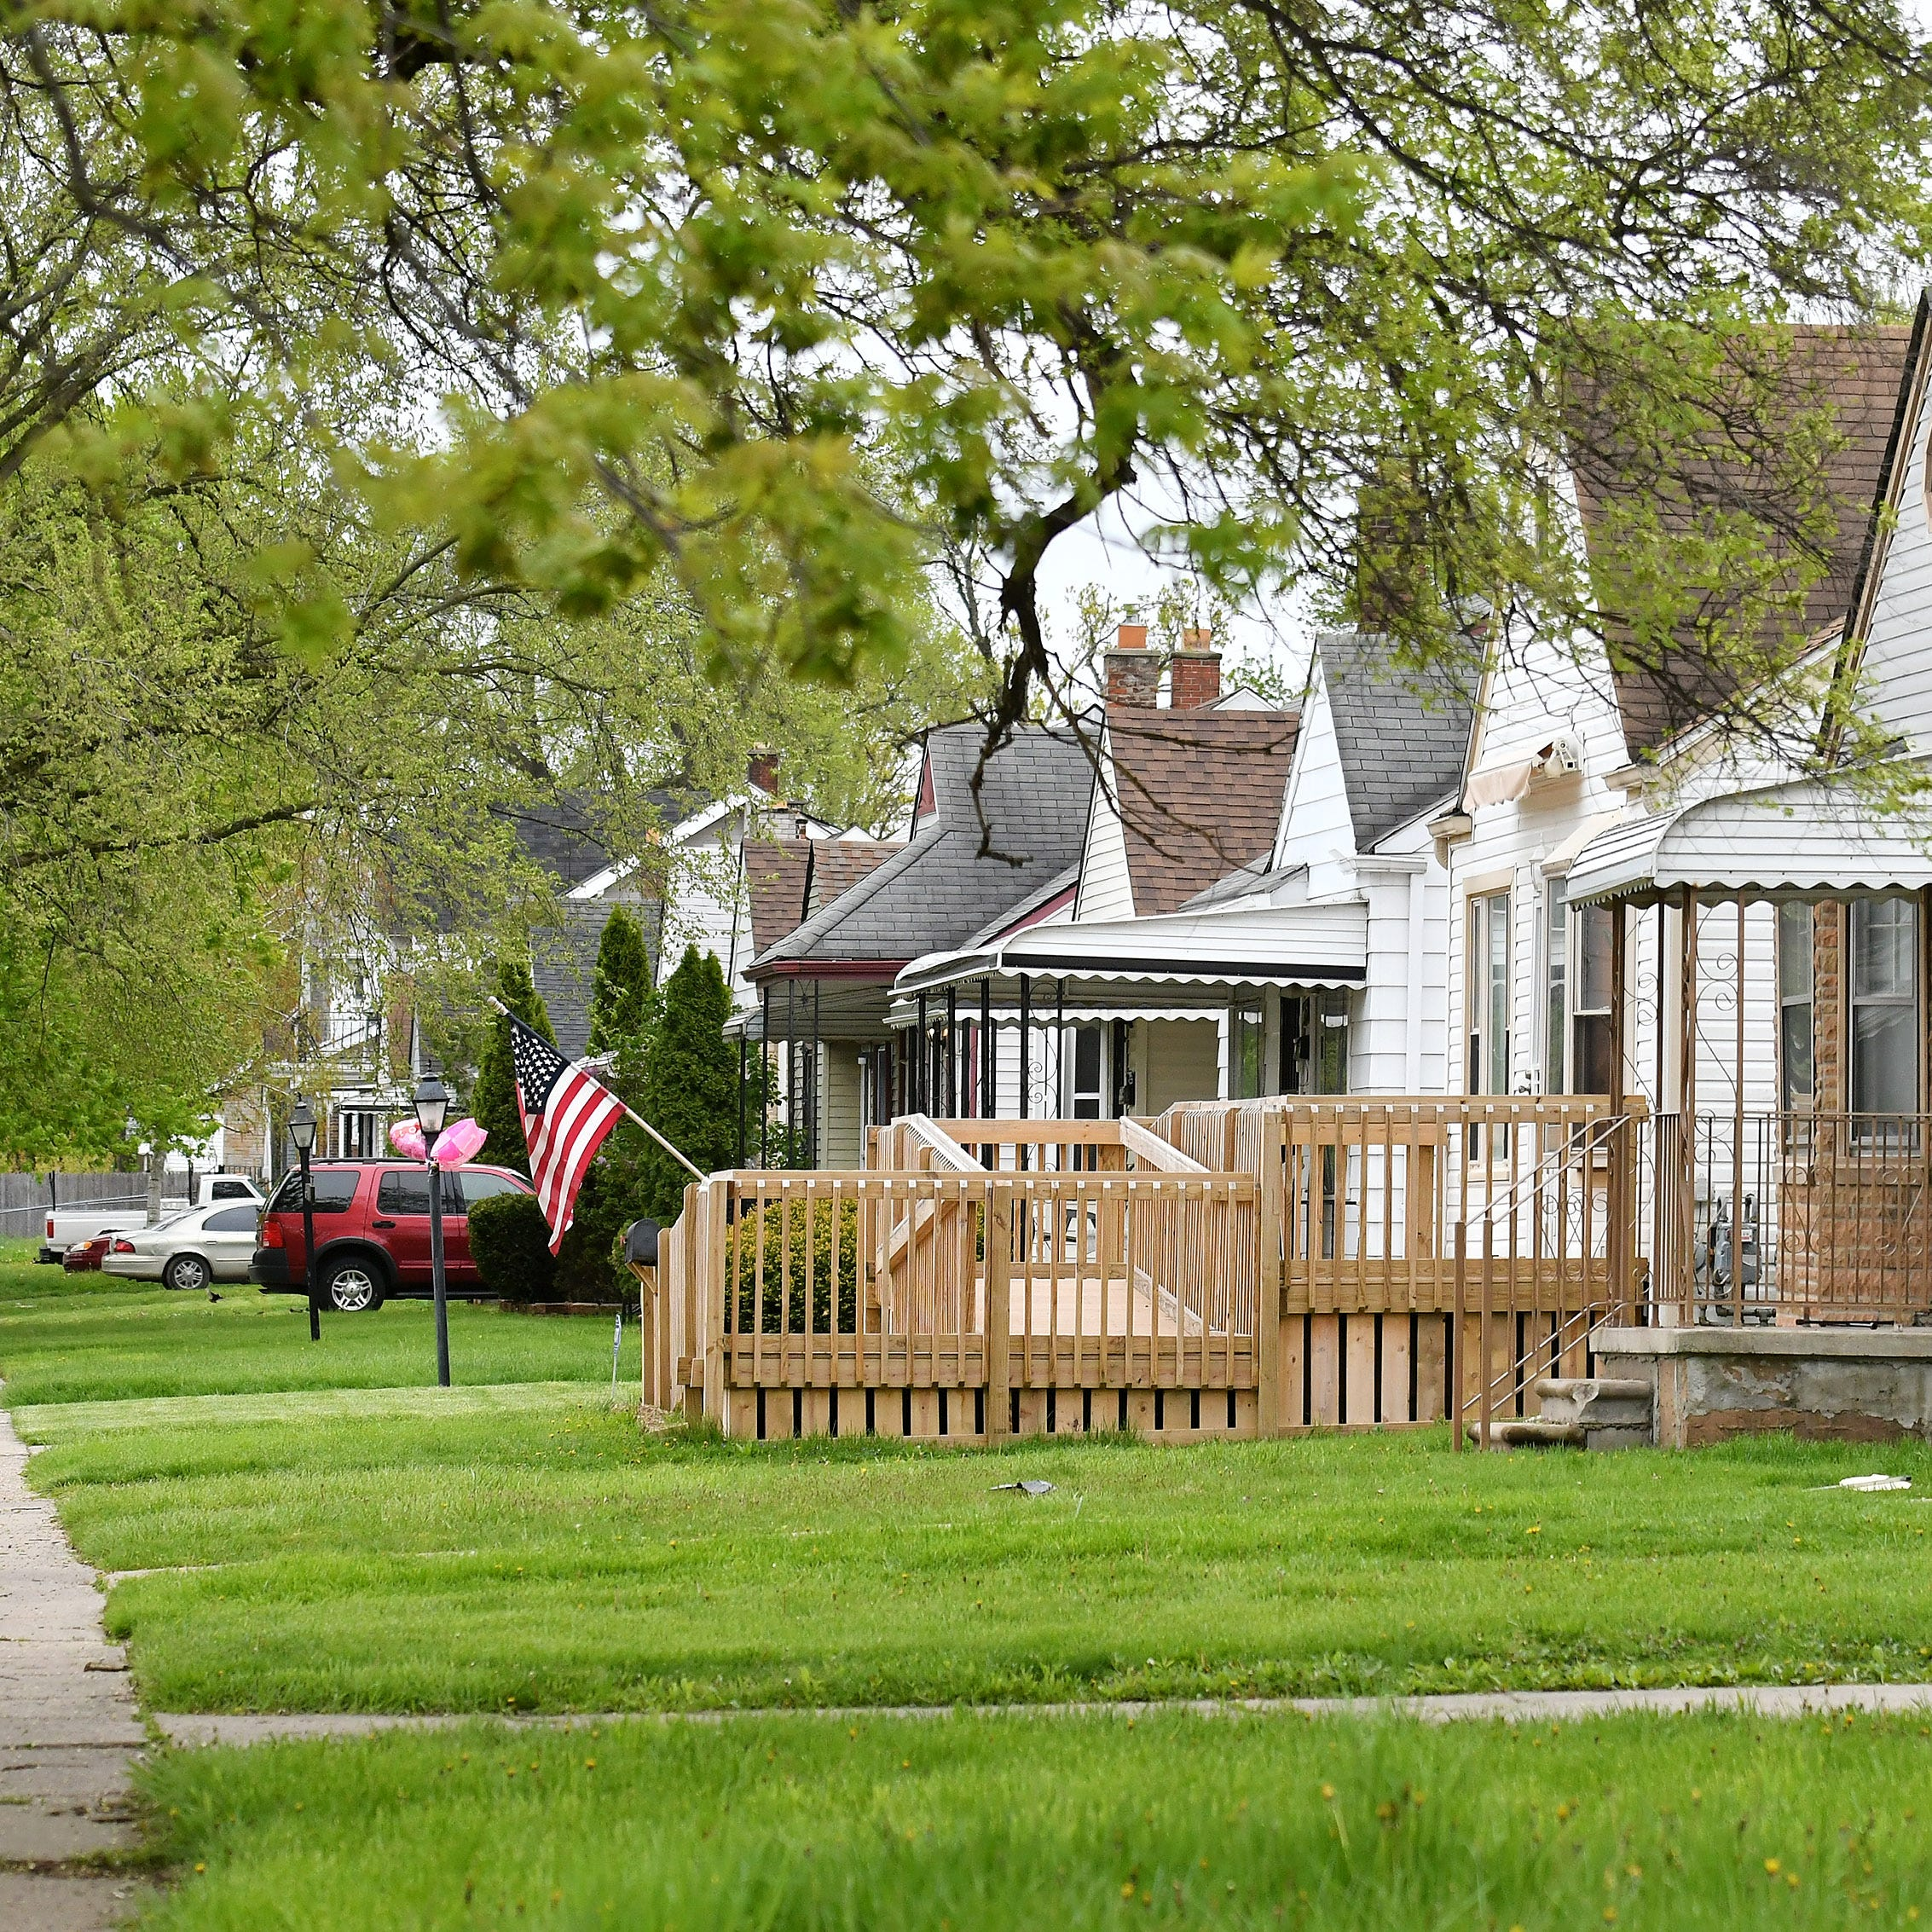 Property values rise in Detroit's Warrendale neighborhood, but crime issues persist